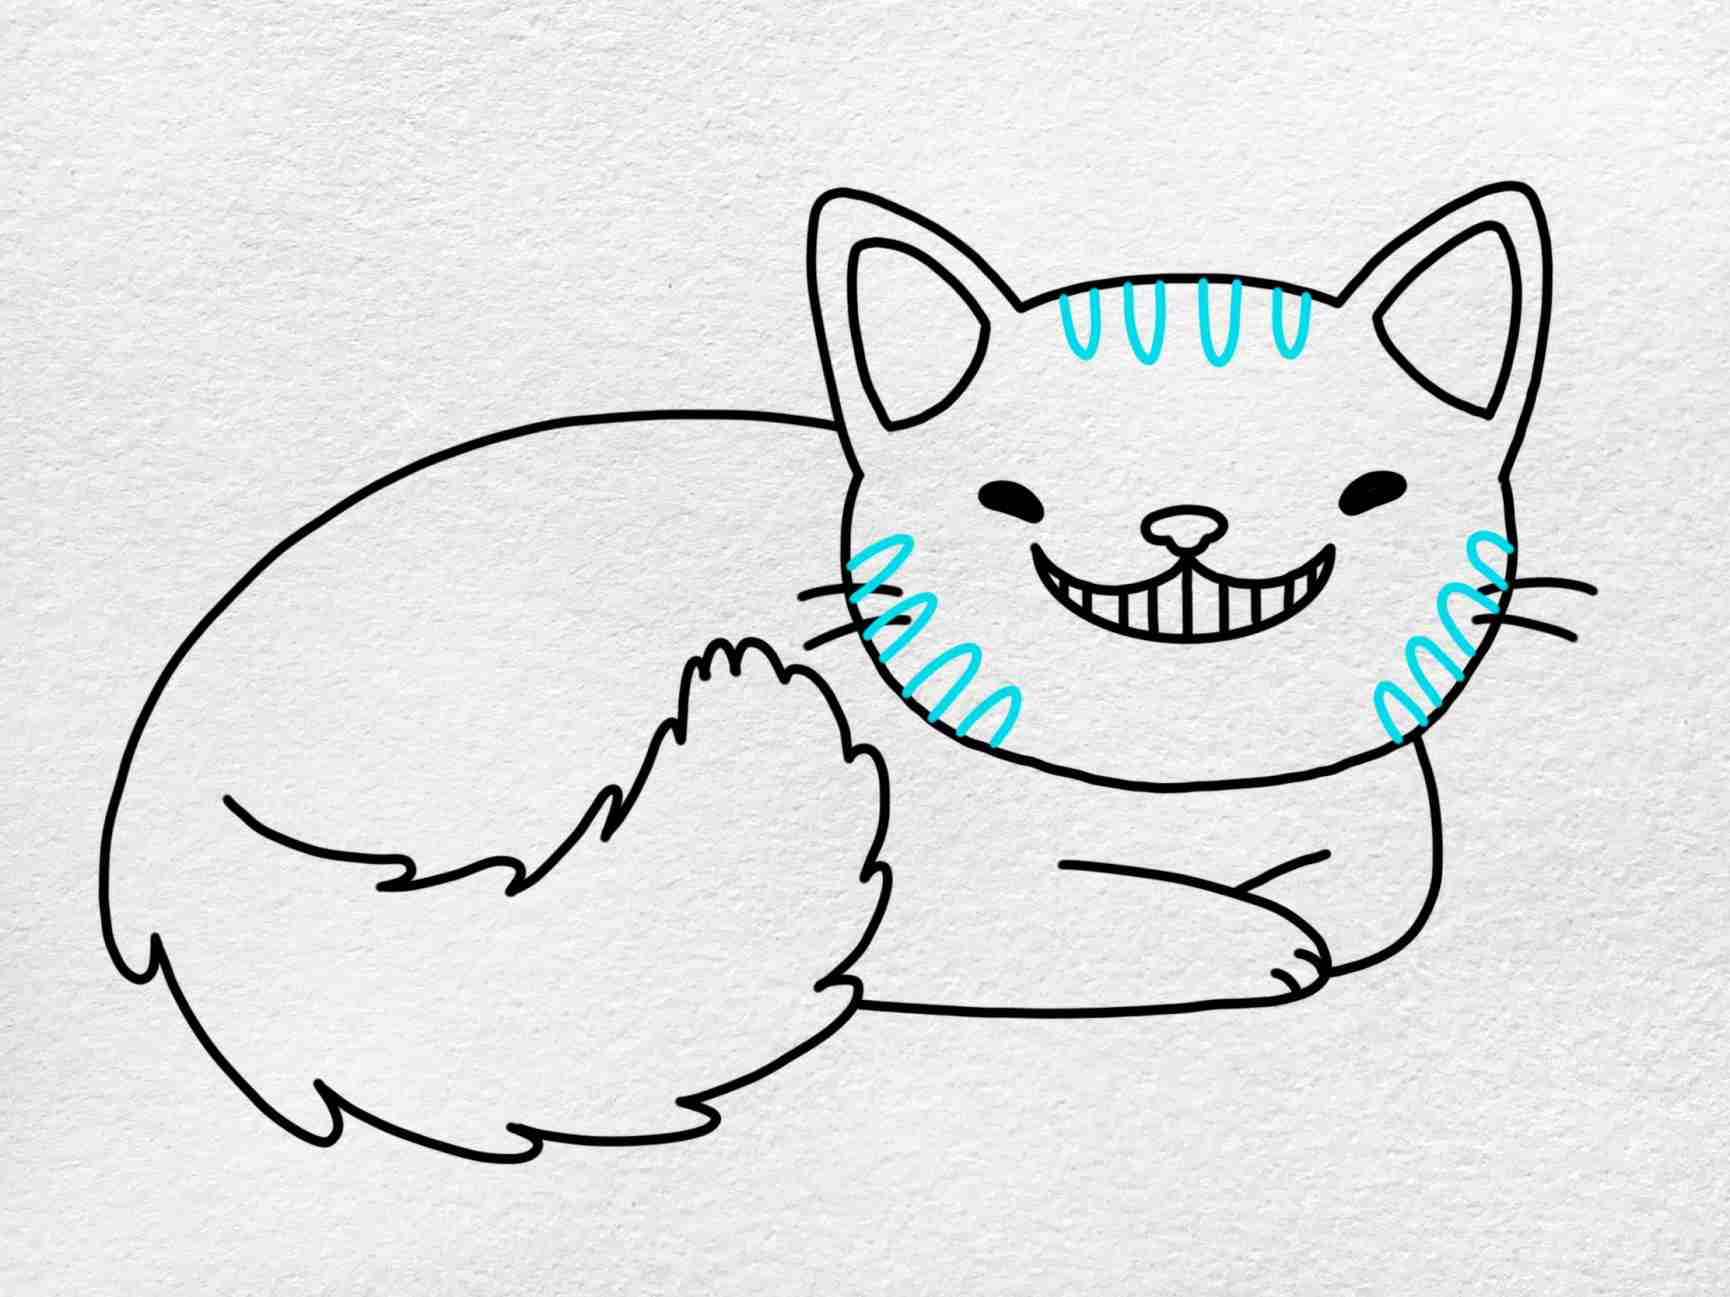 Cheshire Cat Drawing: Step 6